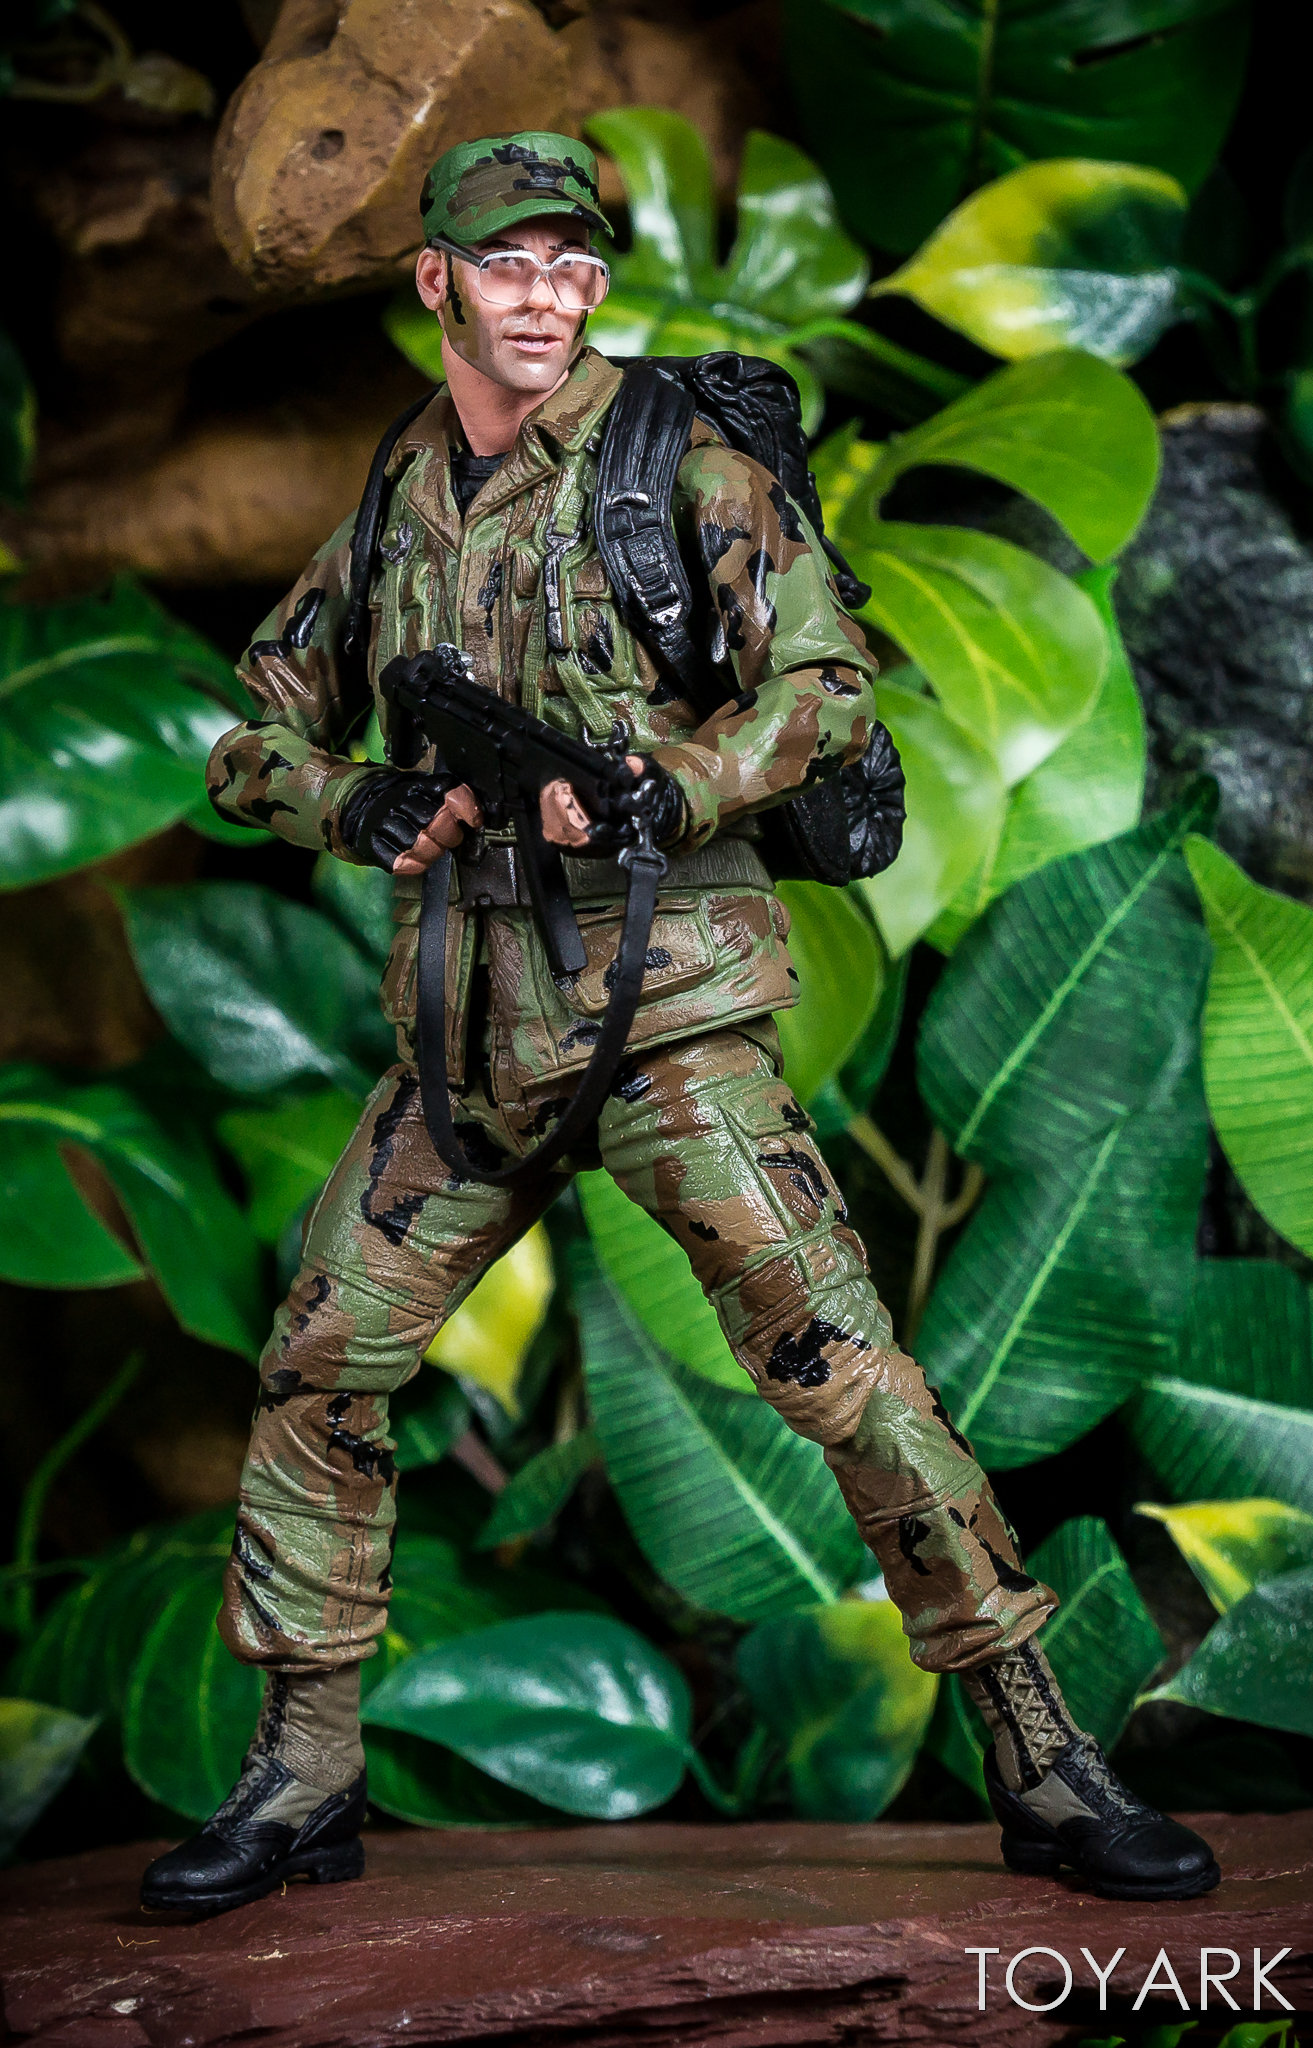 https://news.toyark.com/wp-content/uploads/sites/4/2018/07/NECA-SDCC2018-Predator-Hawkins-011.jpg